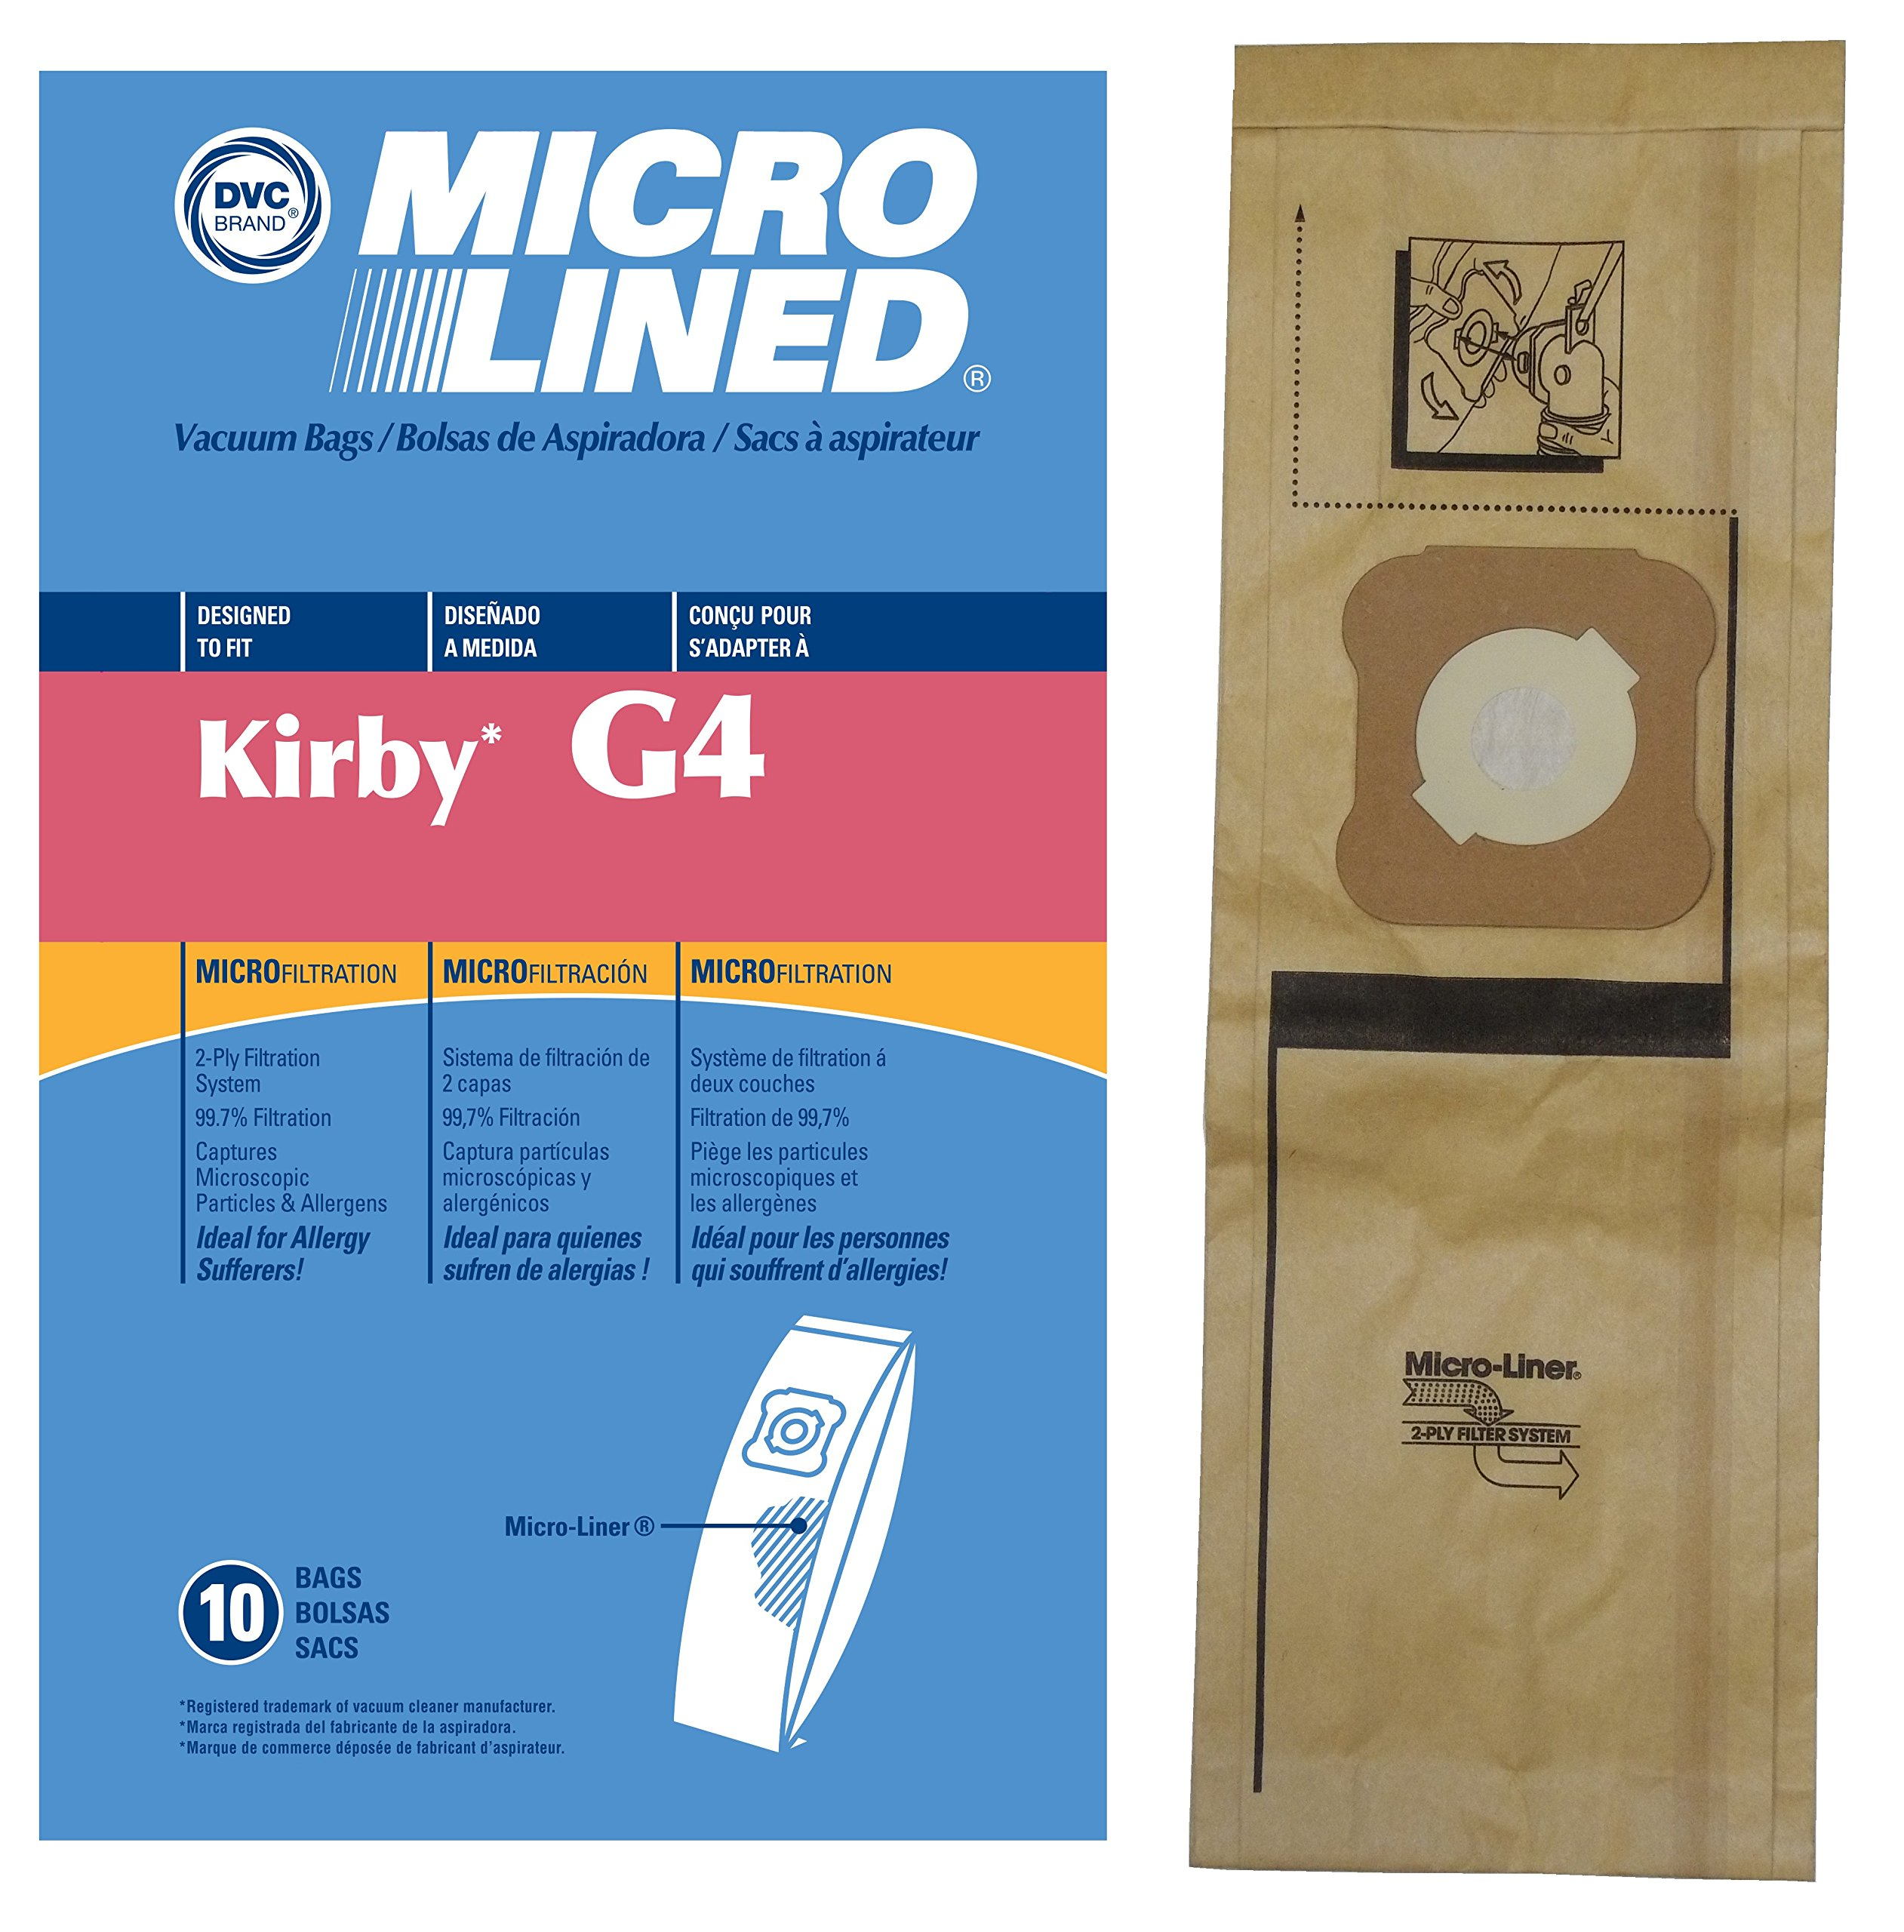 Kirby Generation Series DVC Micro-Lined Allergen Filtration Upright Bags, 10 Bags.